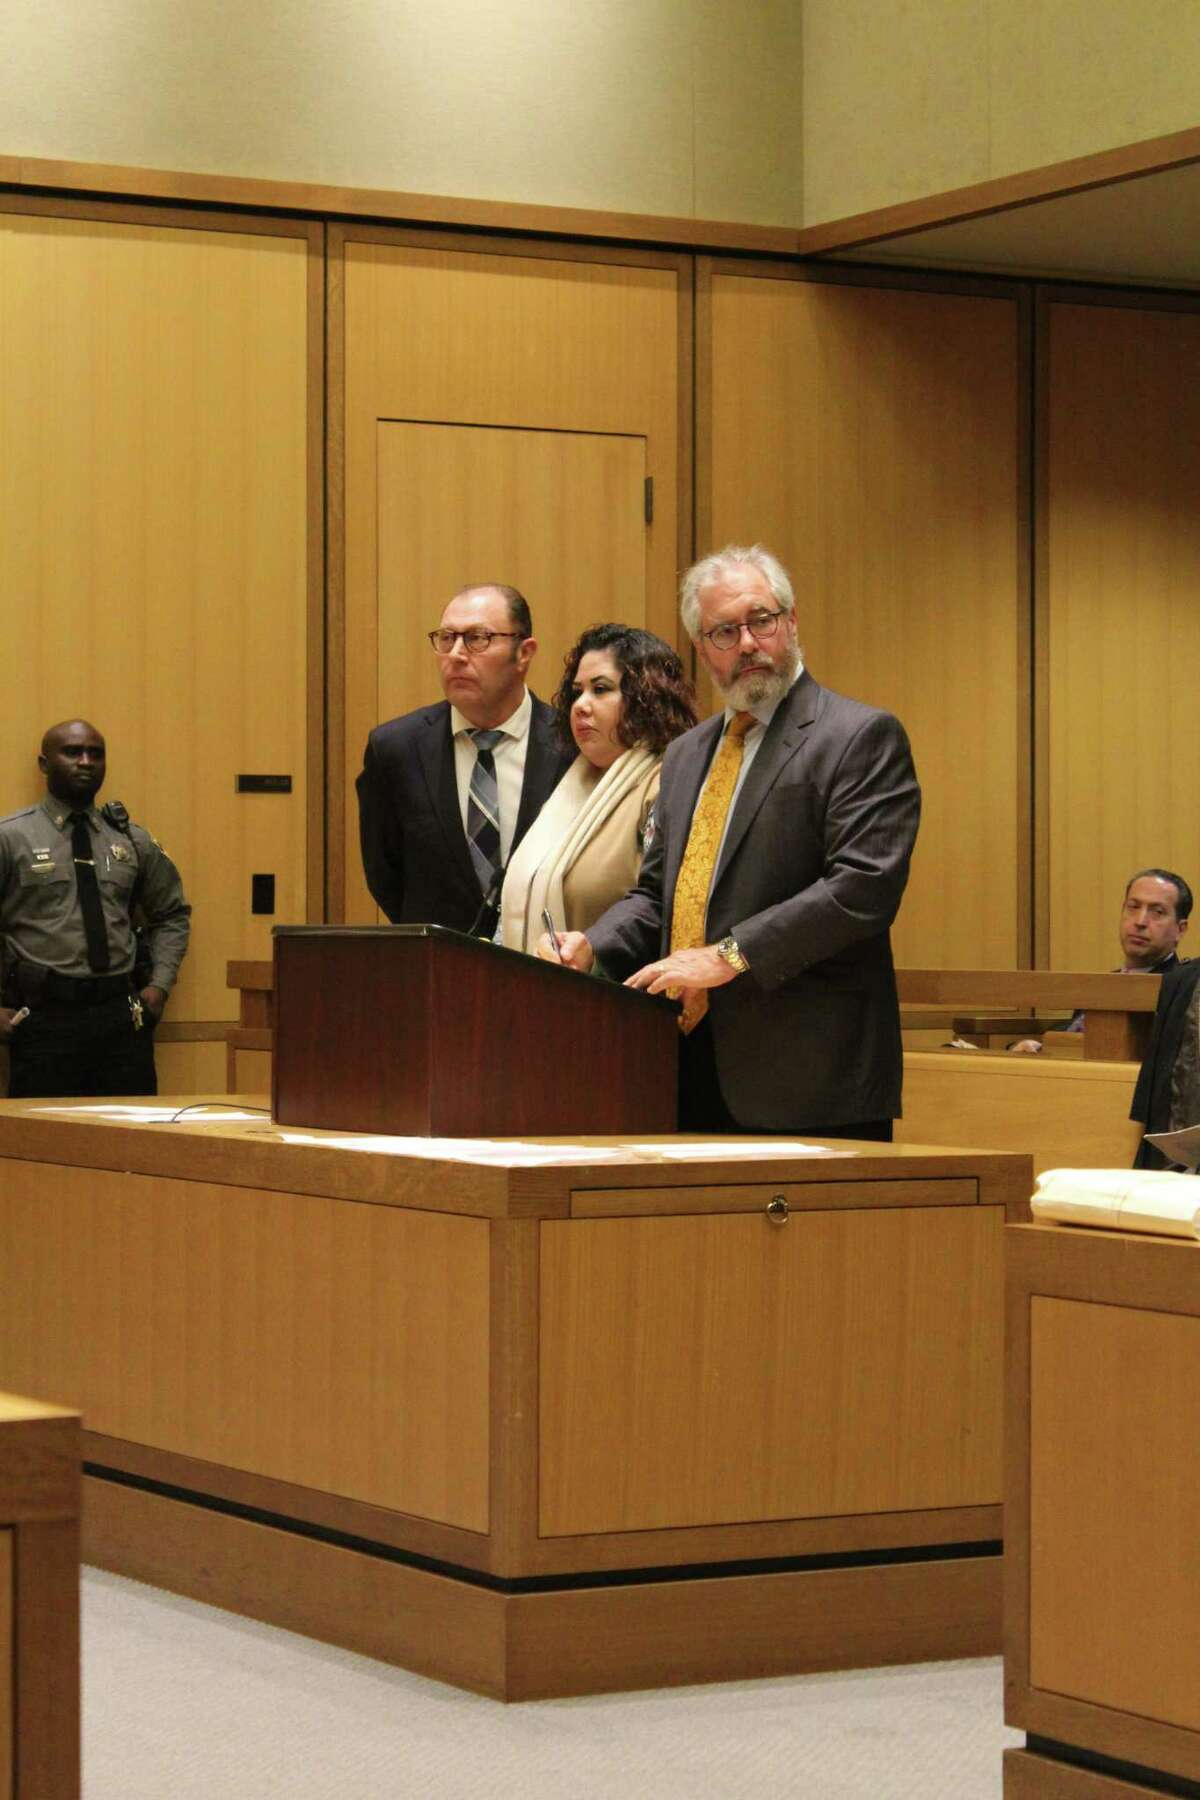 Nydia Carrillo-Maldonado, center, plead guilty to charges of first-degree manslaughter and risk of injury to a minor in Stamford Superior Court on Wednesday.